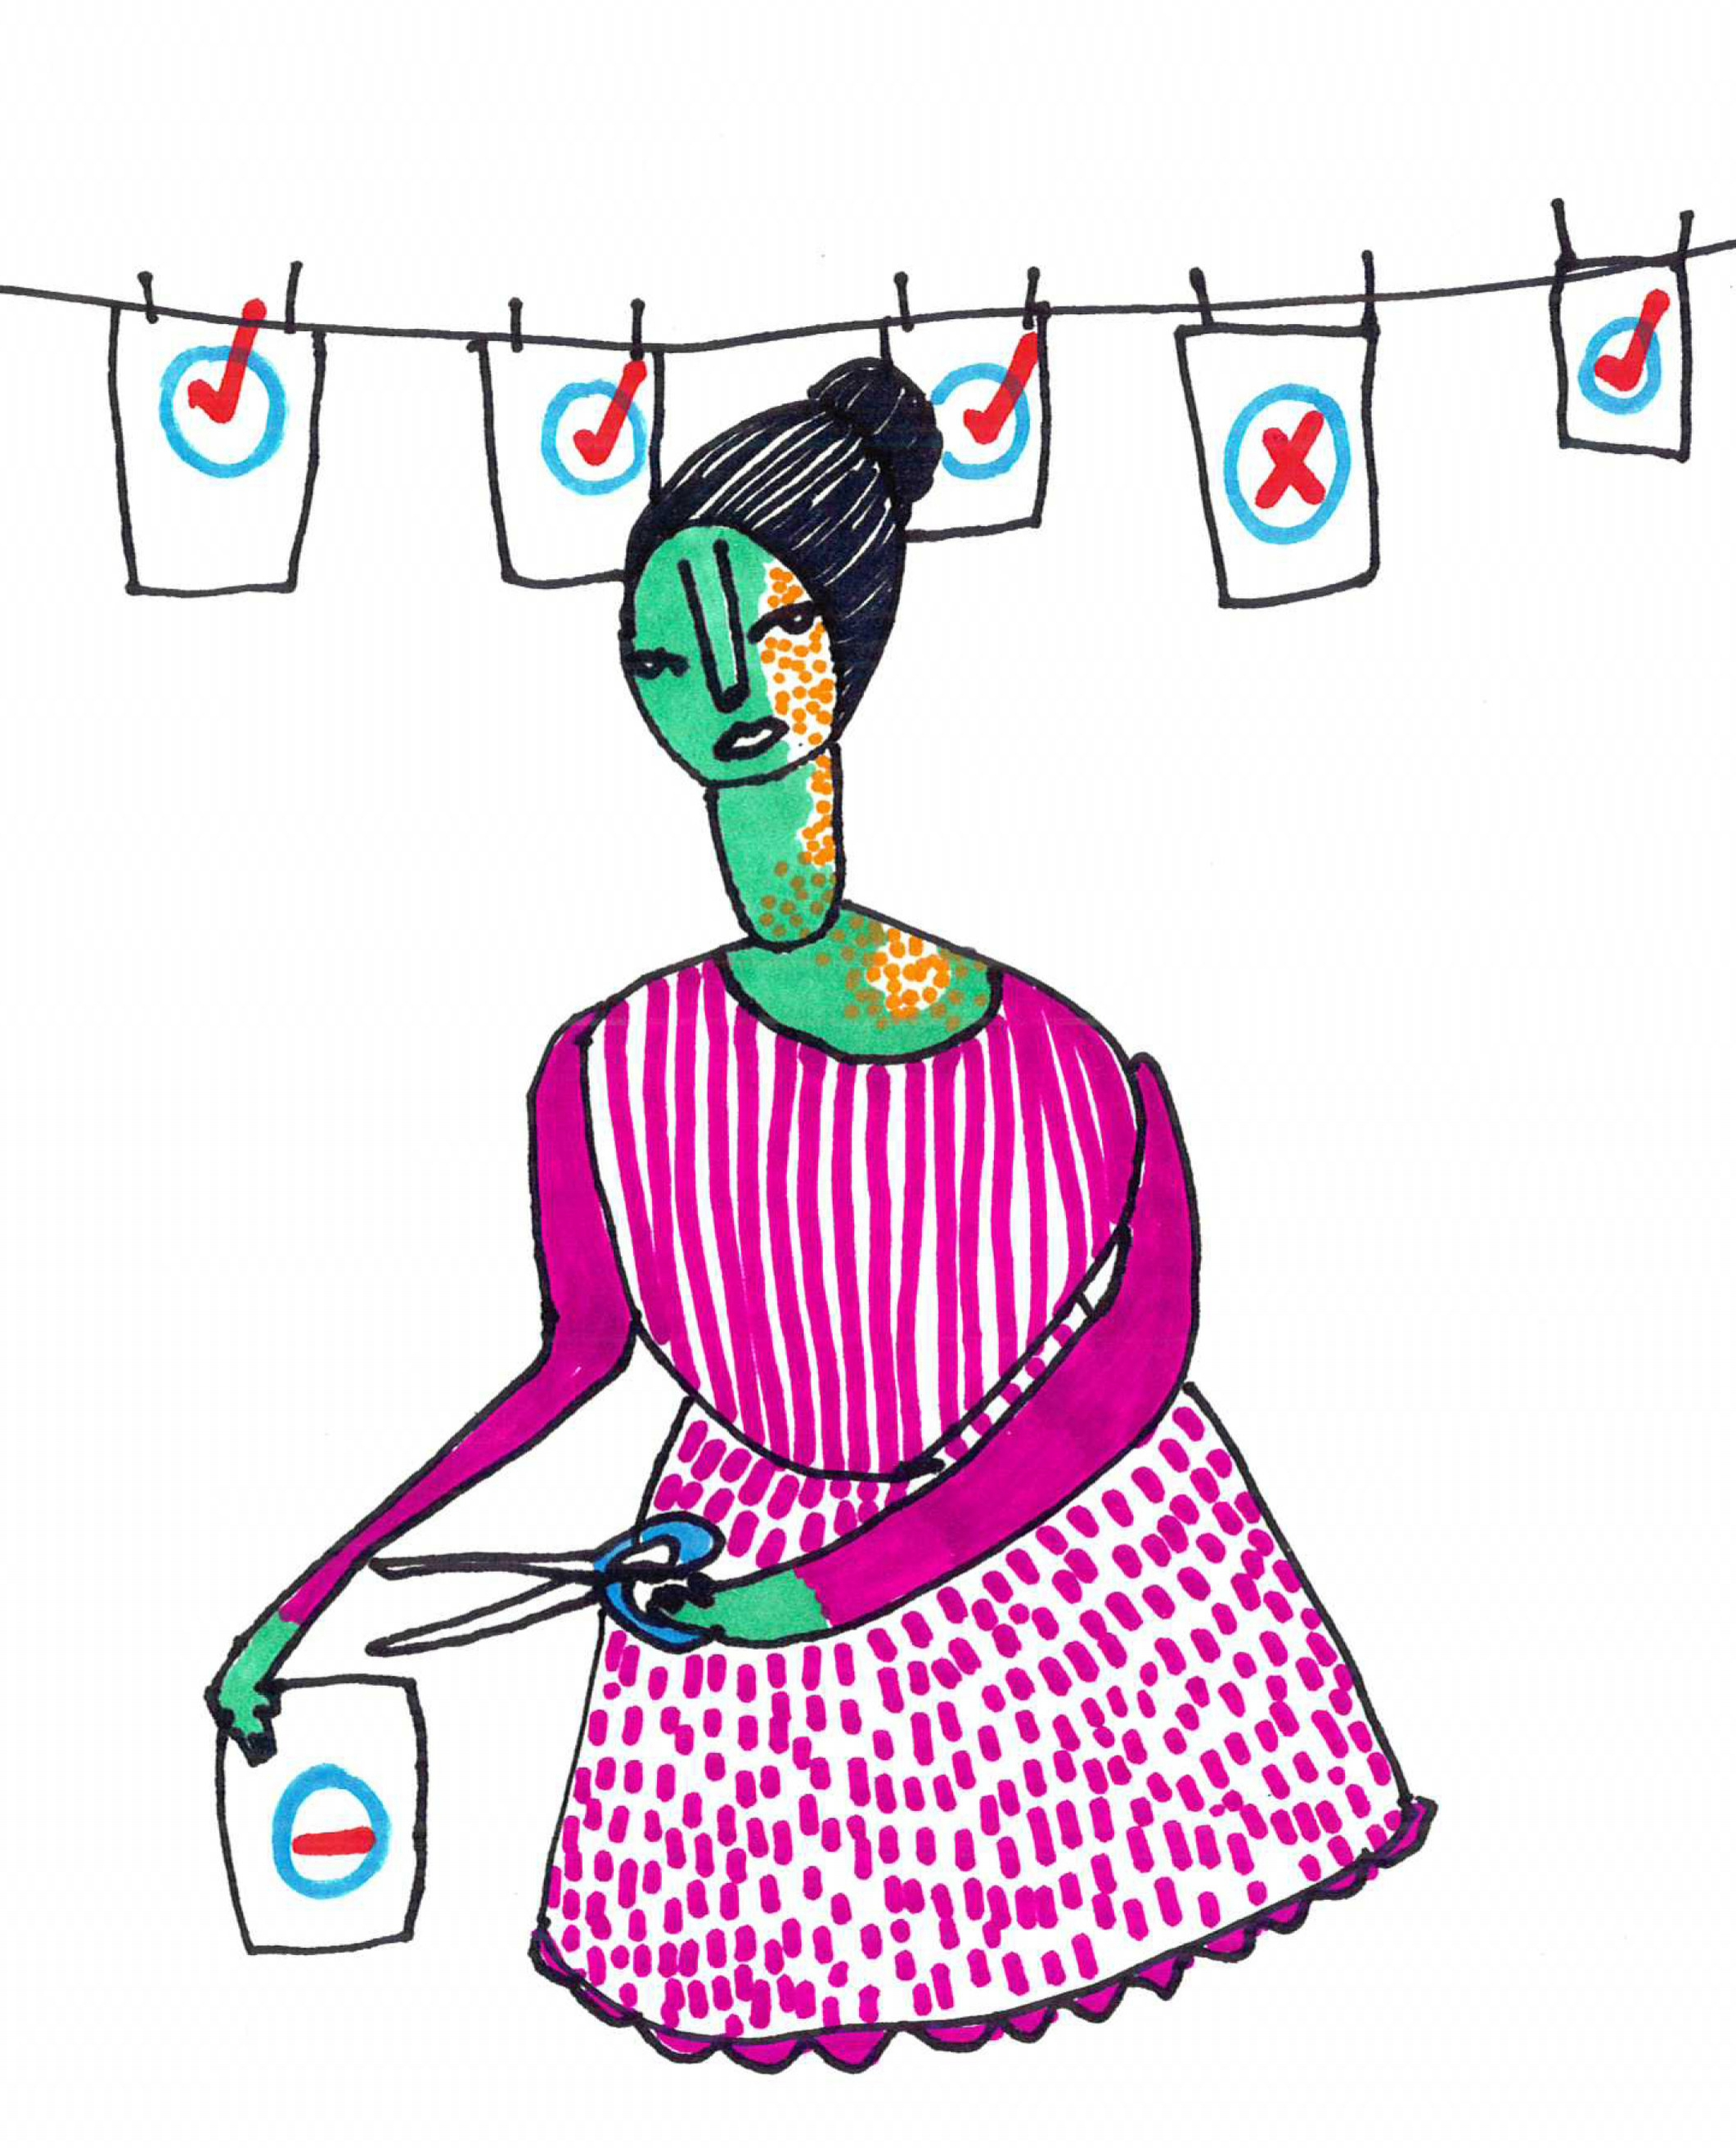 Clothesline and woman with scissors.jpg